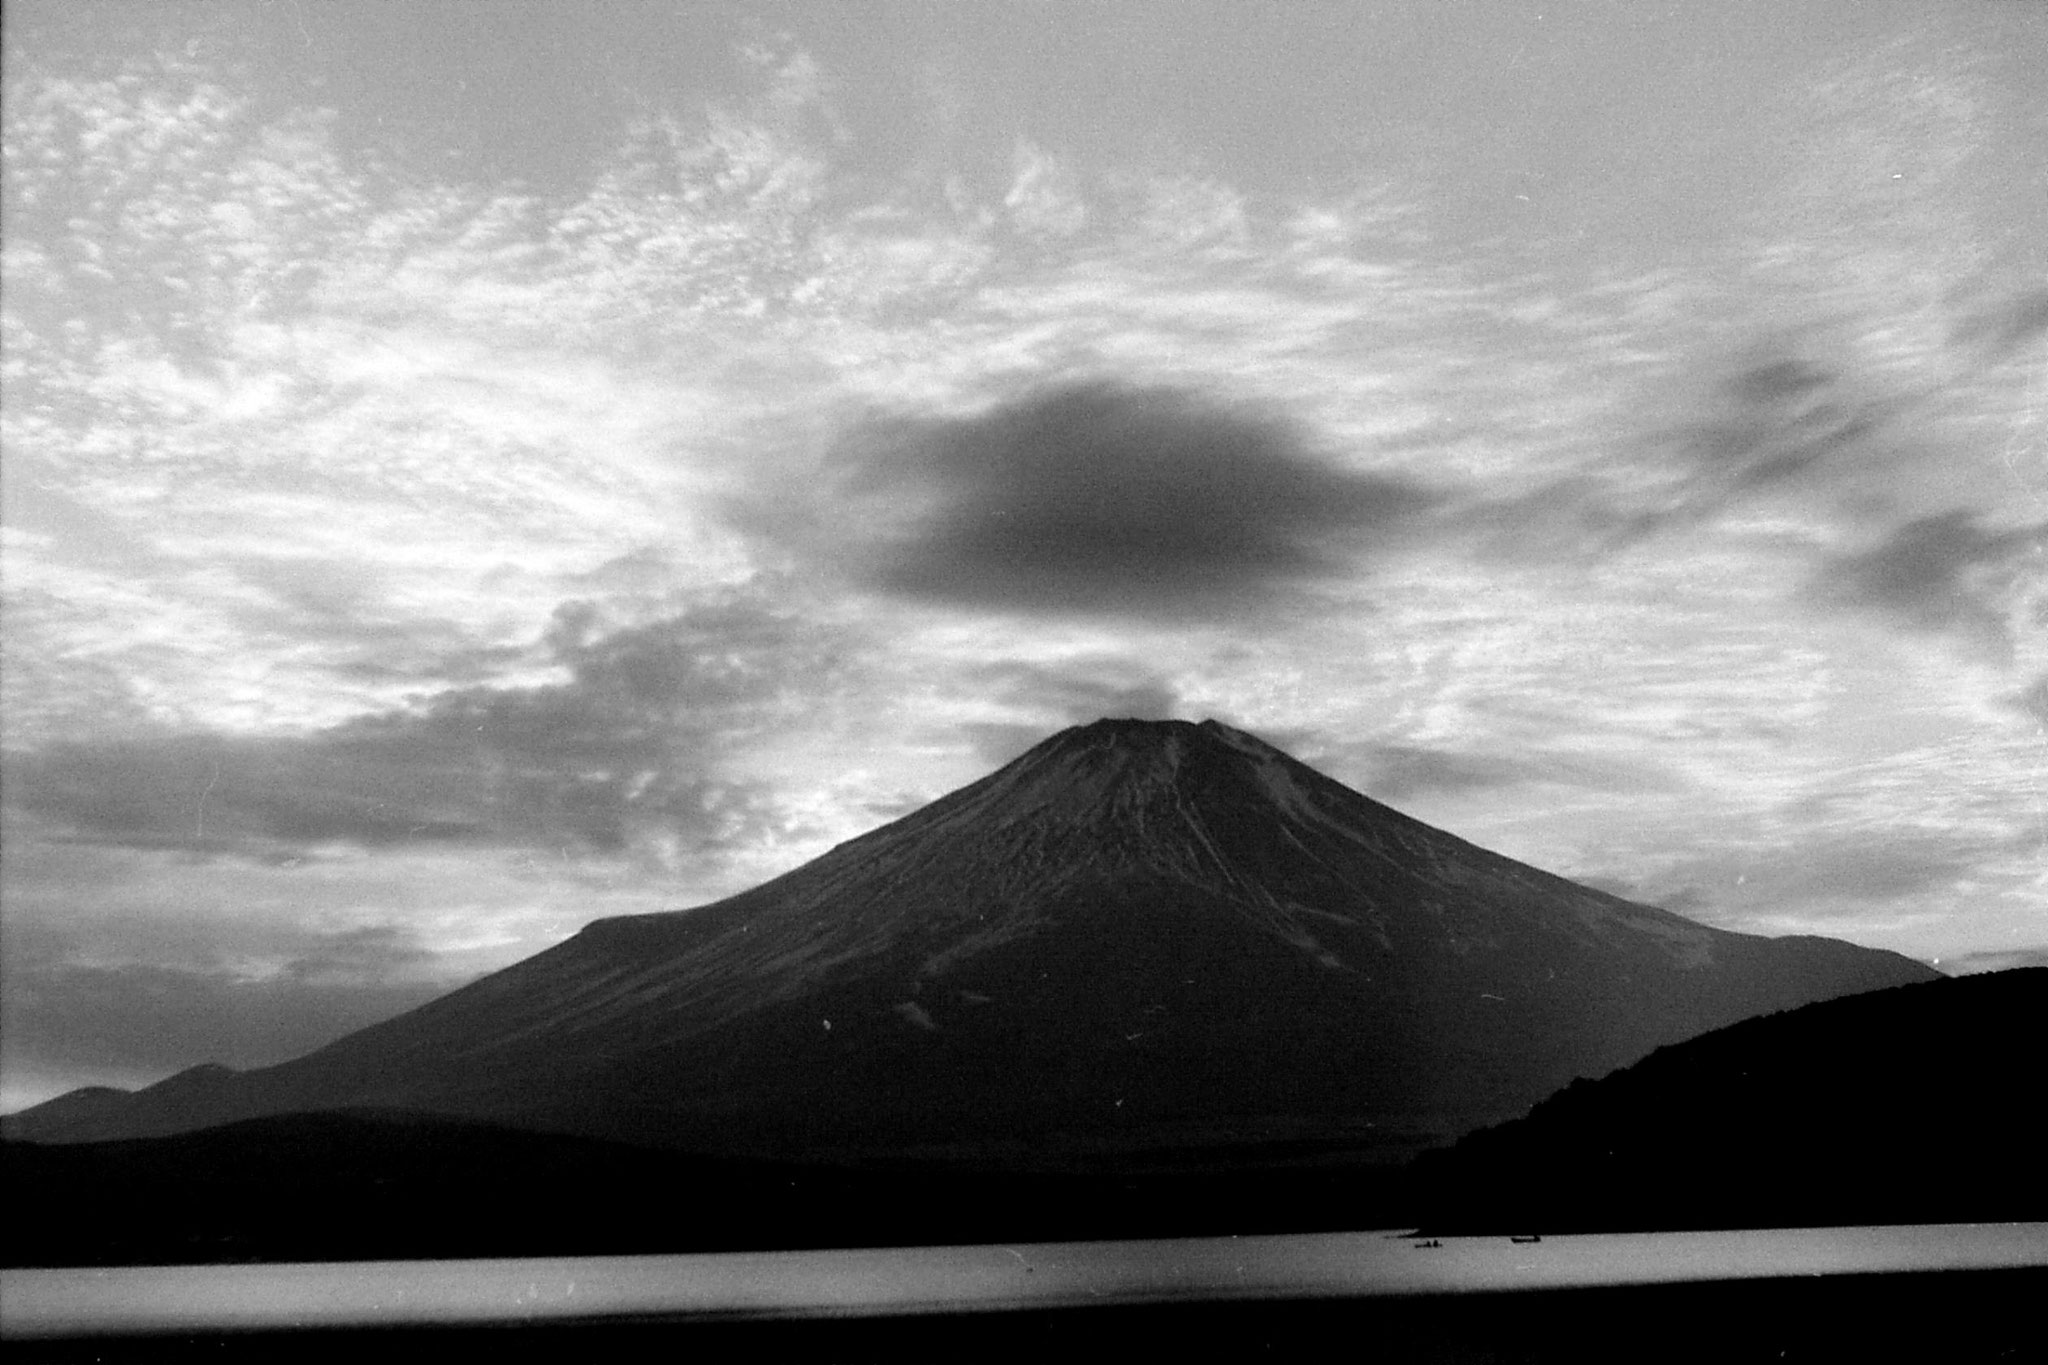 29/12/1988: 32: Mt Fuji and Five Lakes area